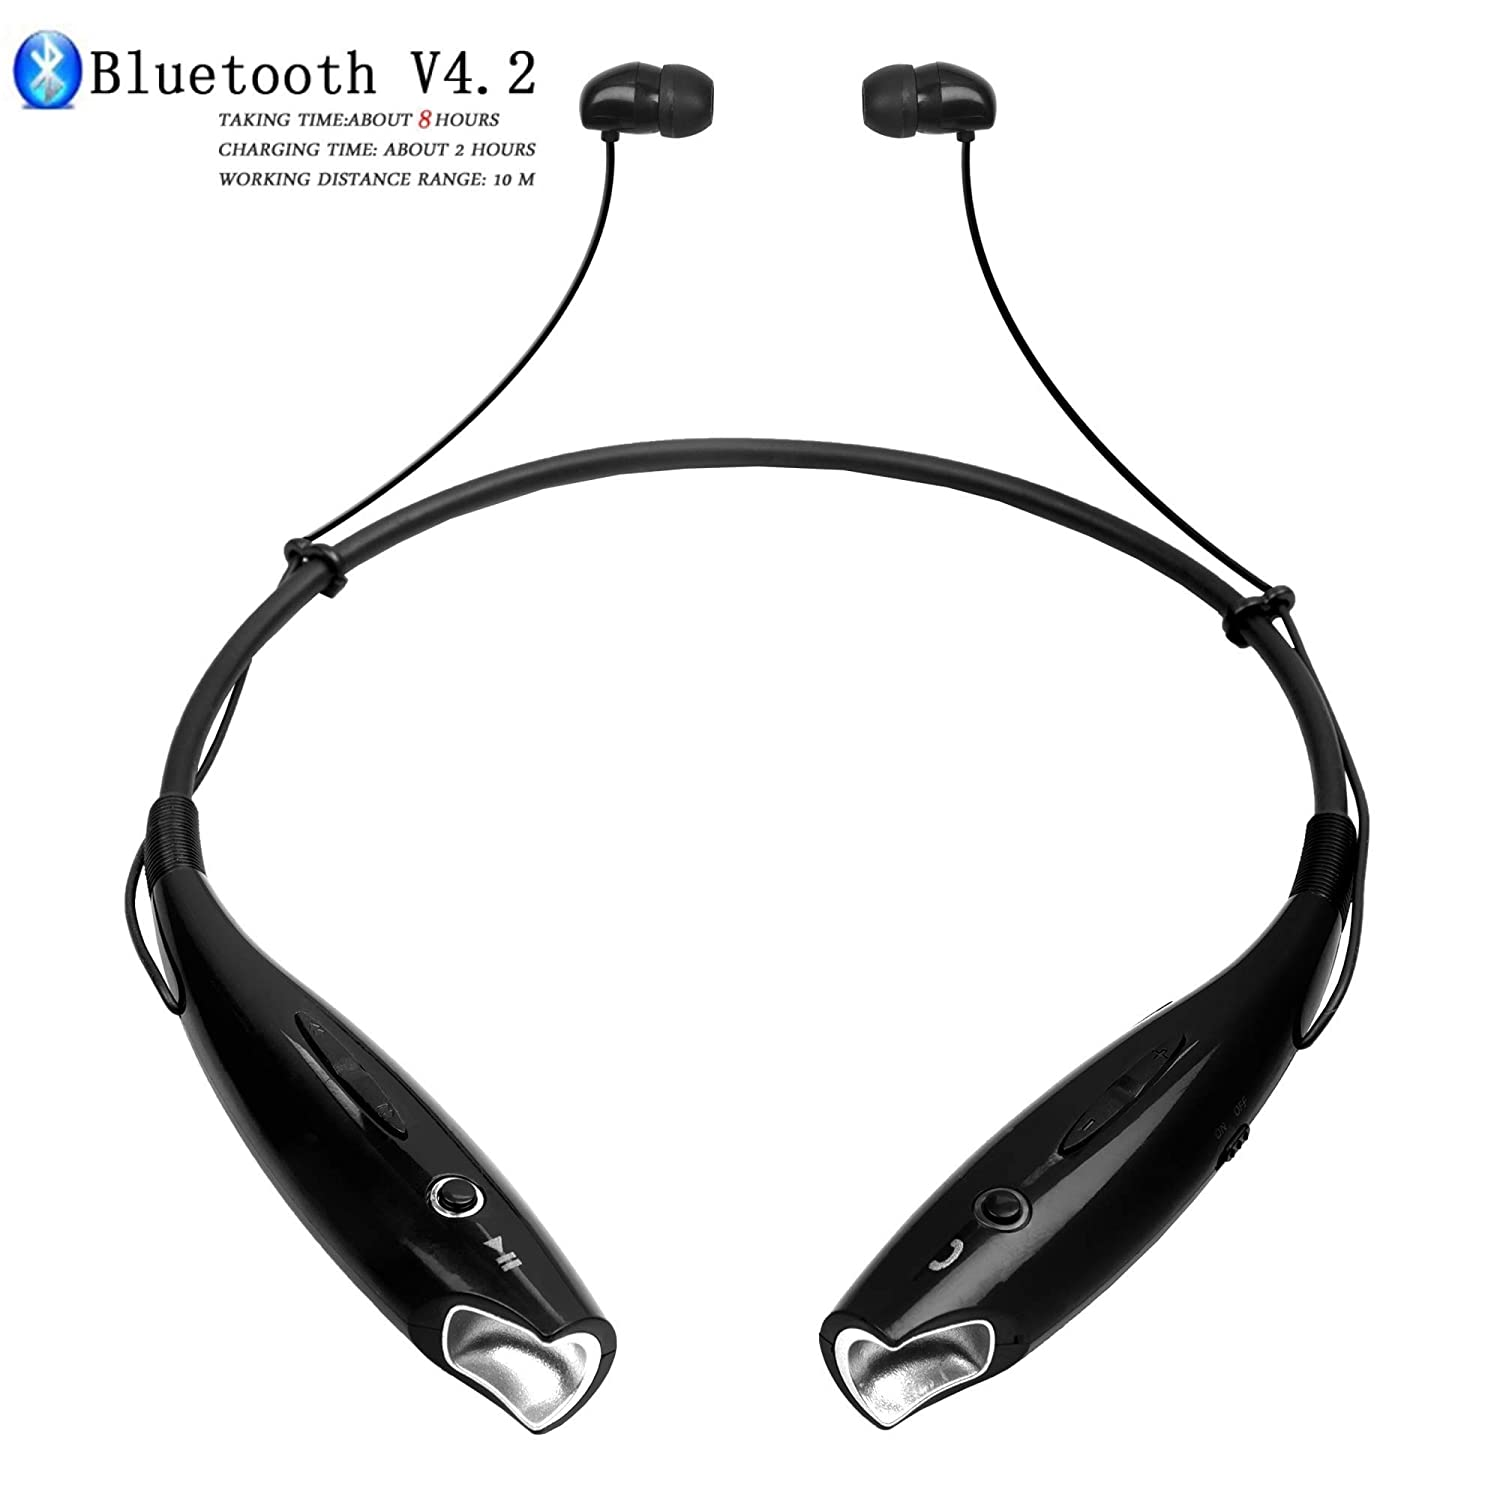 KHULJA HBS 730 Bluetooth Wireless Headphones Sport Stereo Headsets Hands Free with Microphone and Neckband for Android